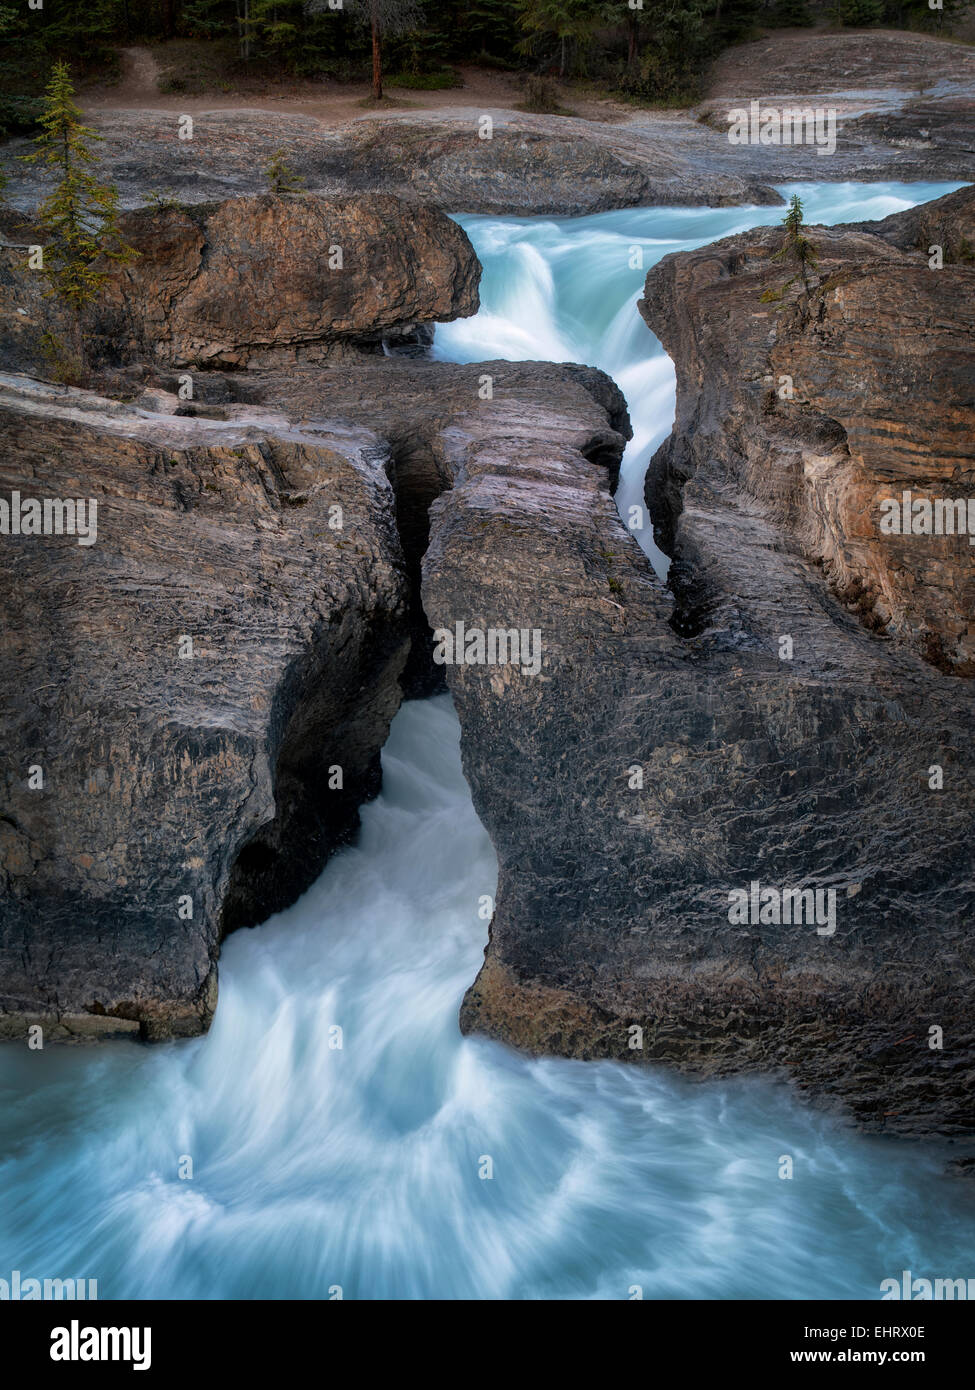 Kicking Horse River and Natural Bridge Falls in British Columbia's Canadian Rockies and Yoho National Park. - Stock Image